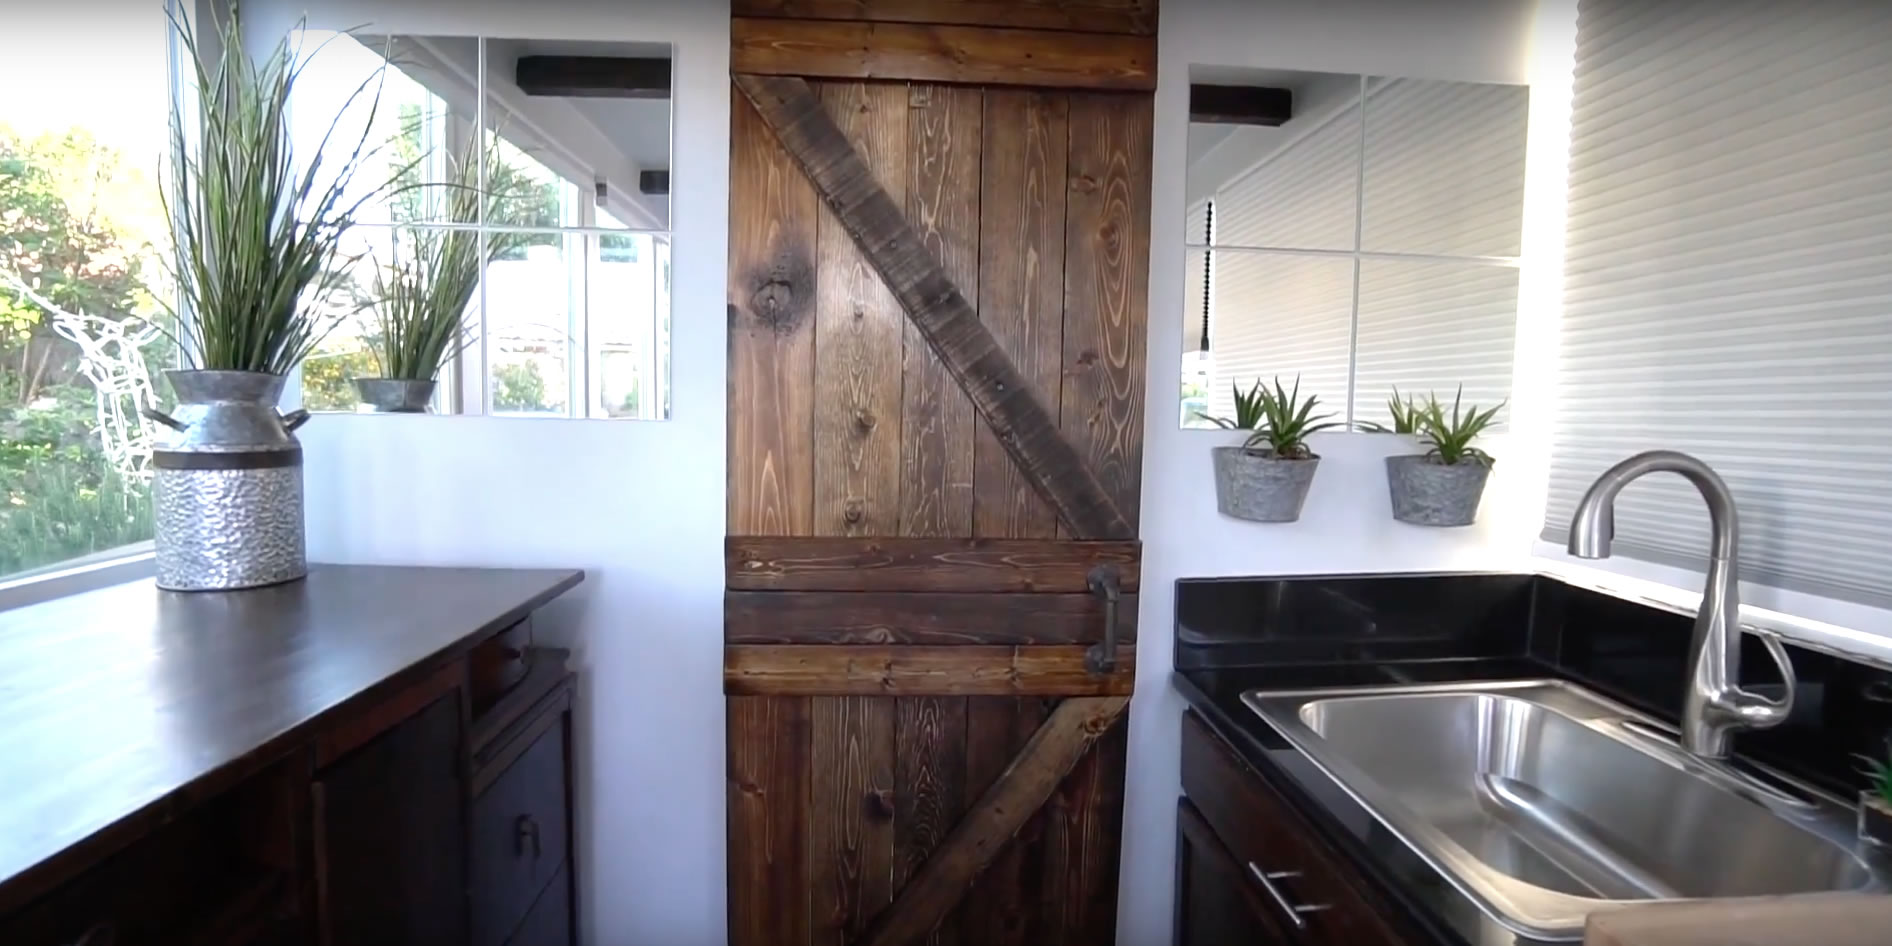 Barn Door - Alternative Living Spaces Container Home